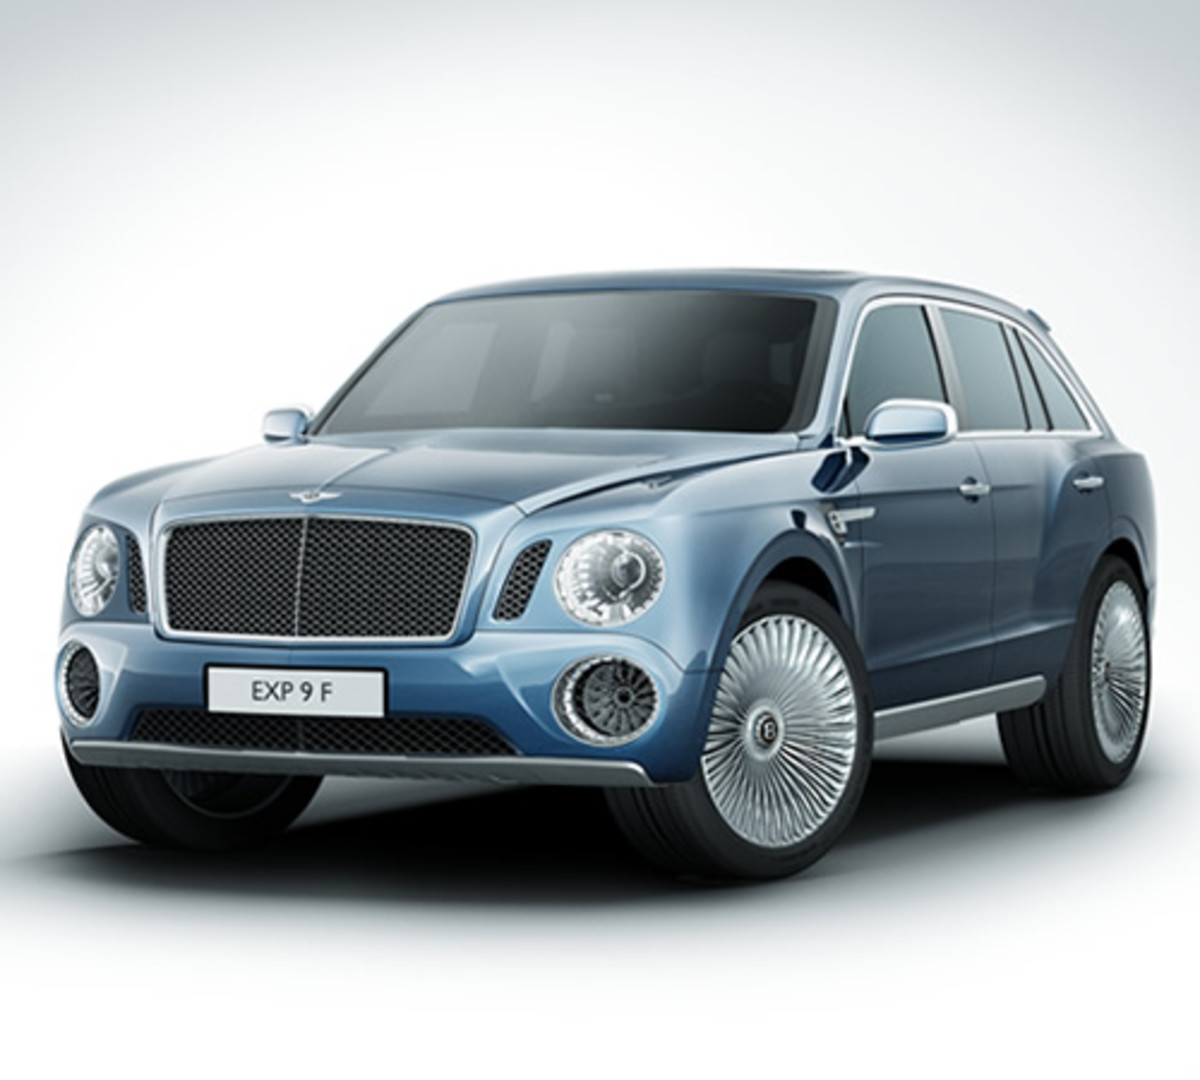 Bentley 2014: Bentley EXP 9 F Concept SUV